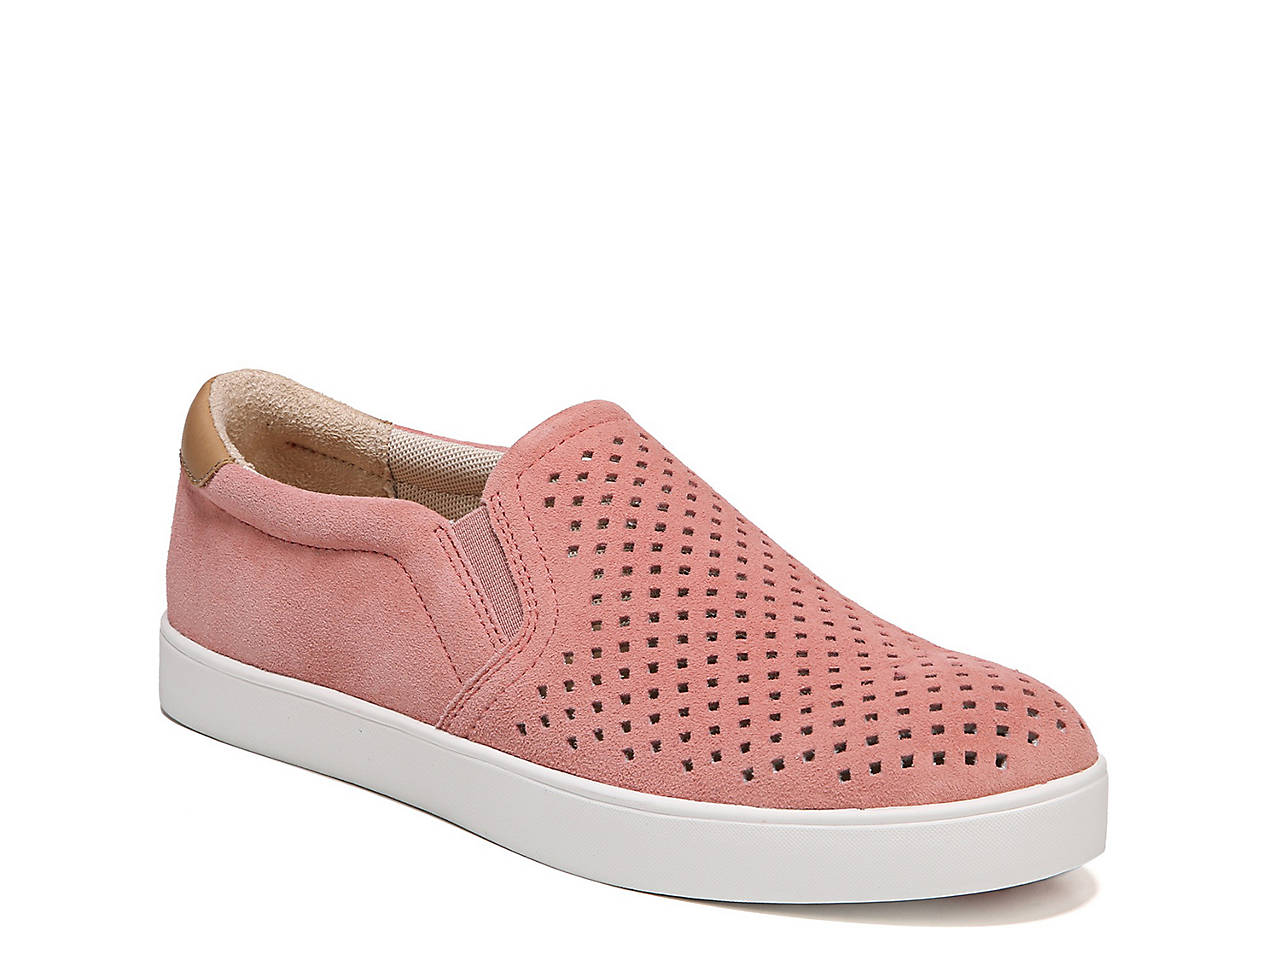 Scout Perfortated Jute Slip-On Shoes misUQP